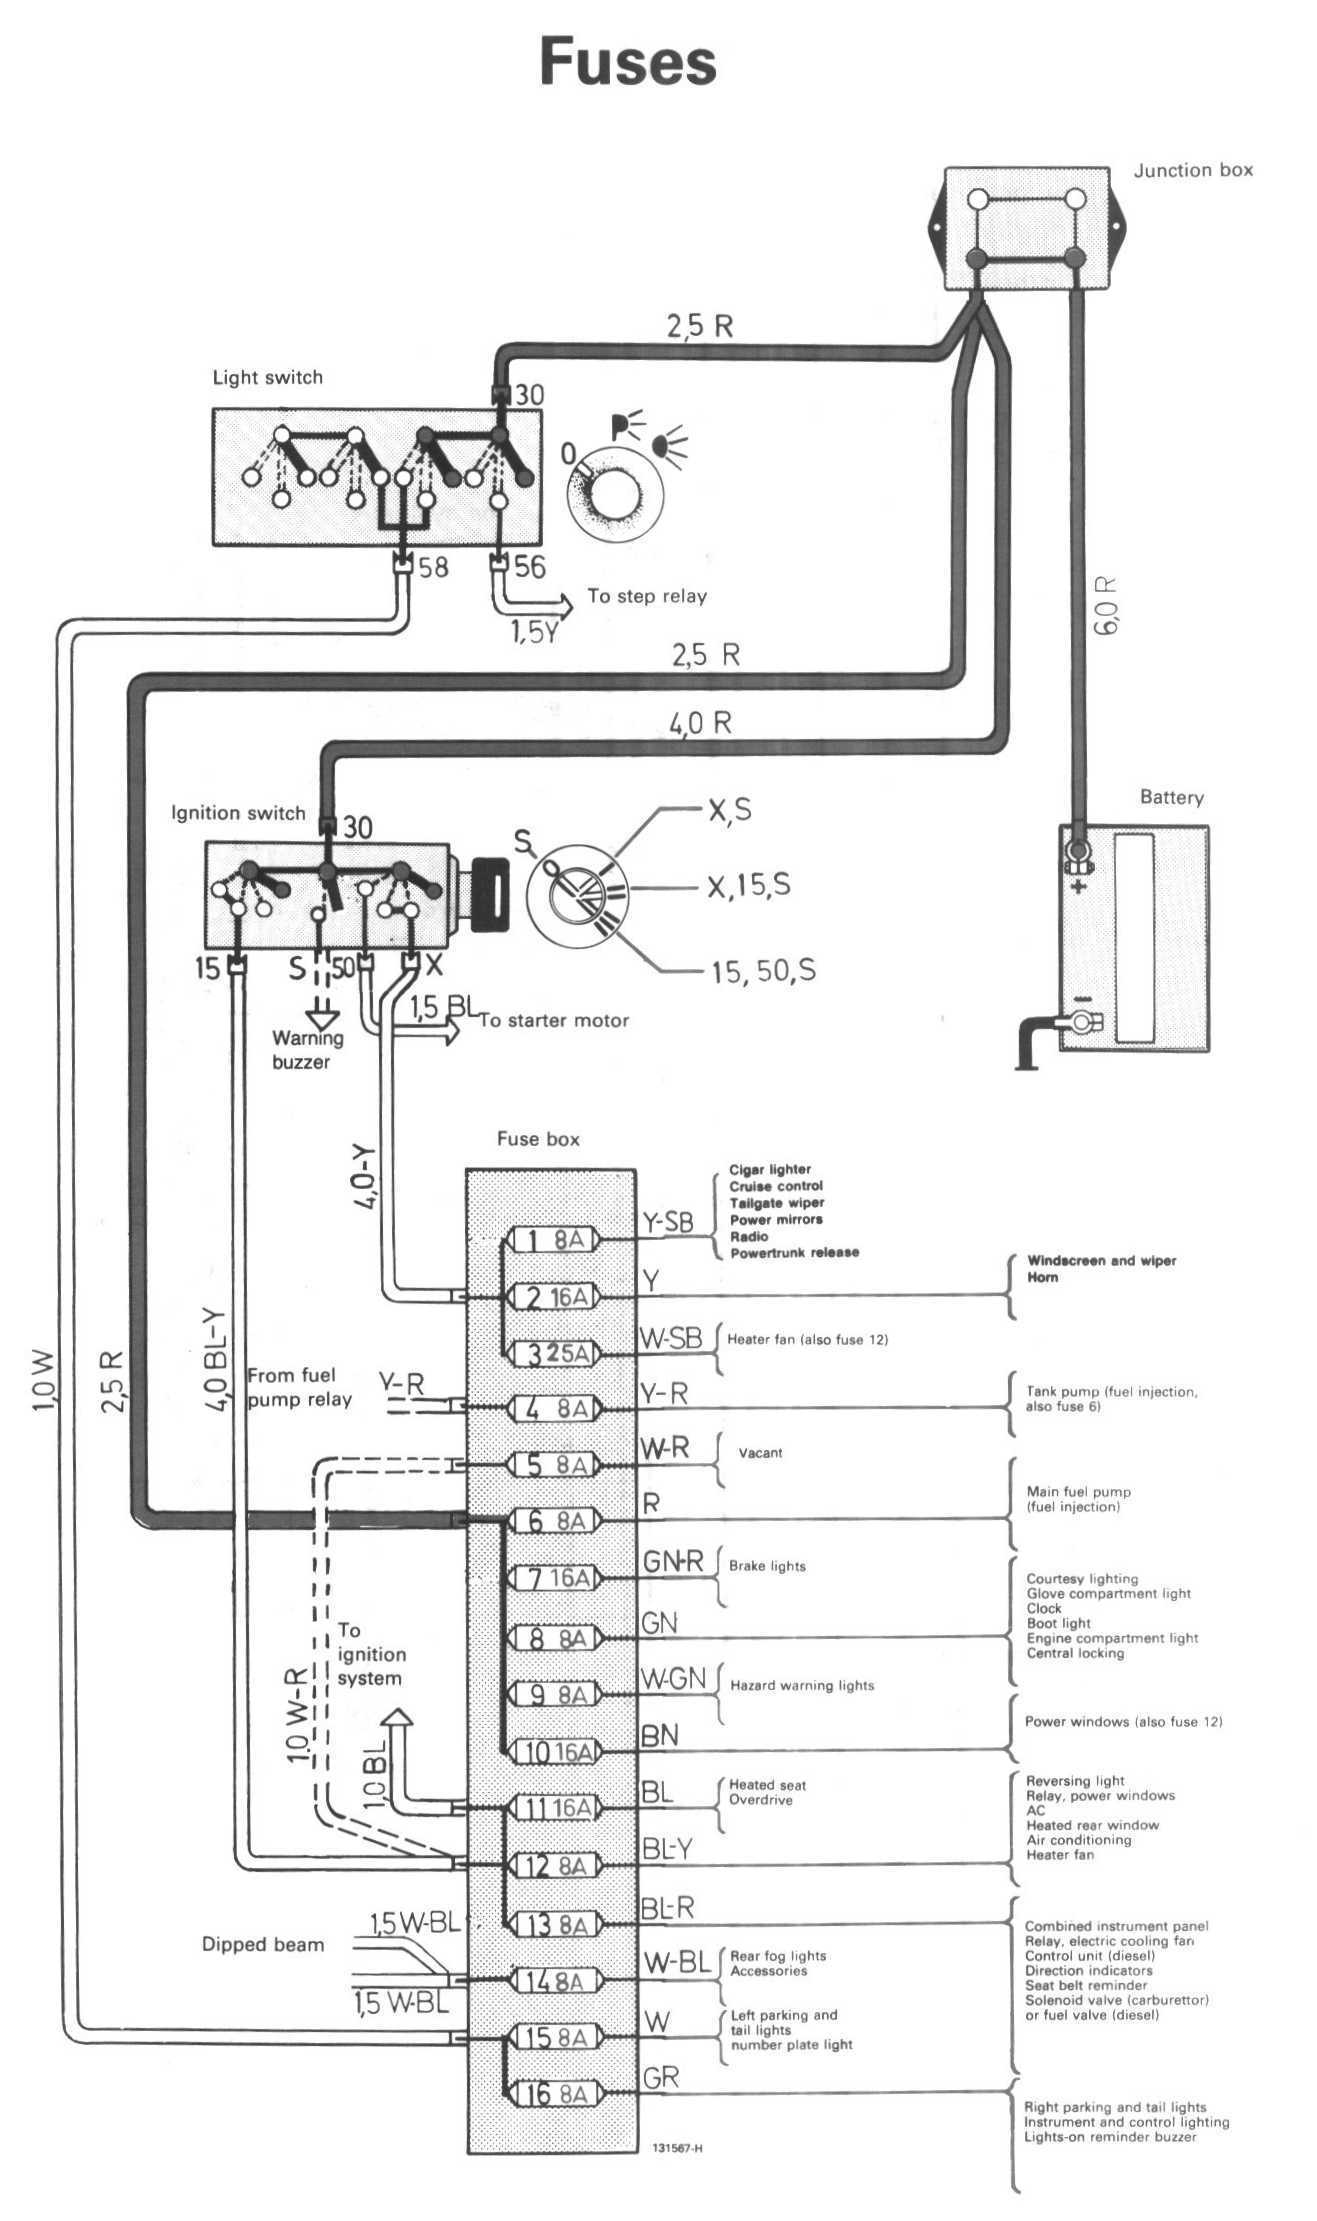 volvo 240 fuel pump relay wiring diagram   40 wiring